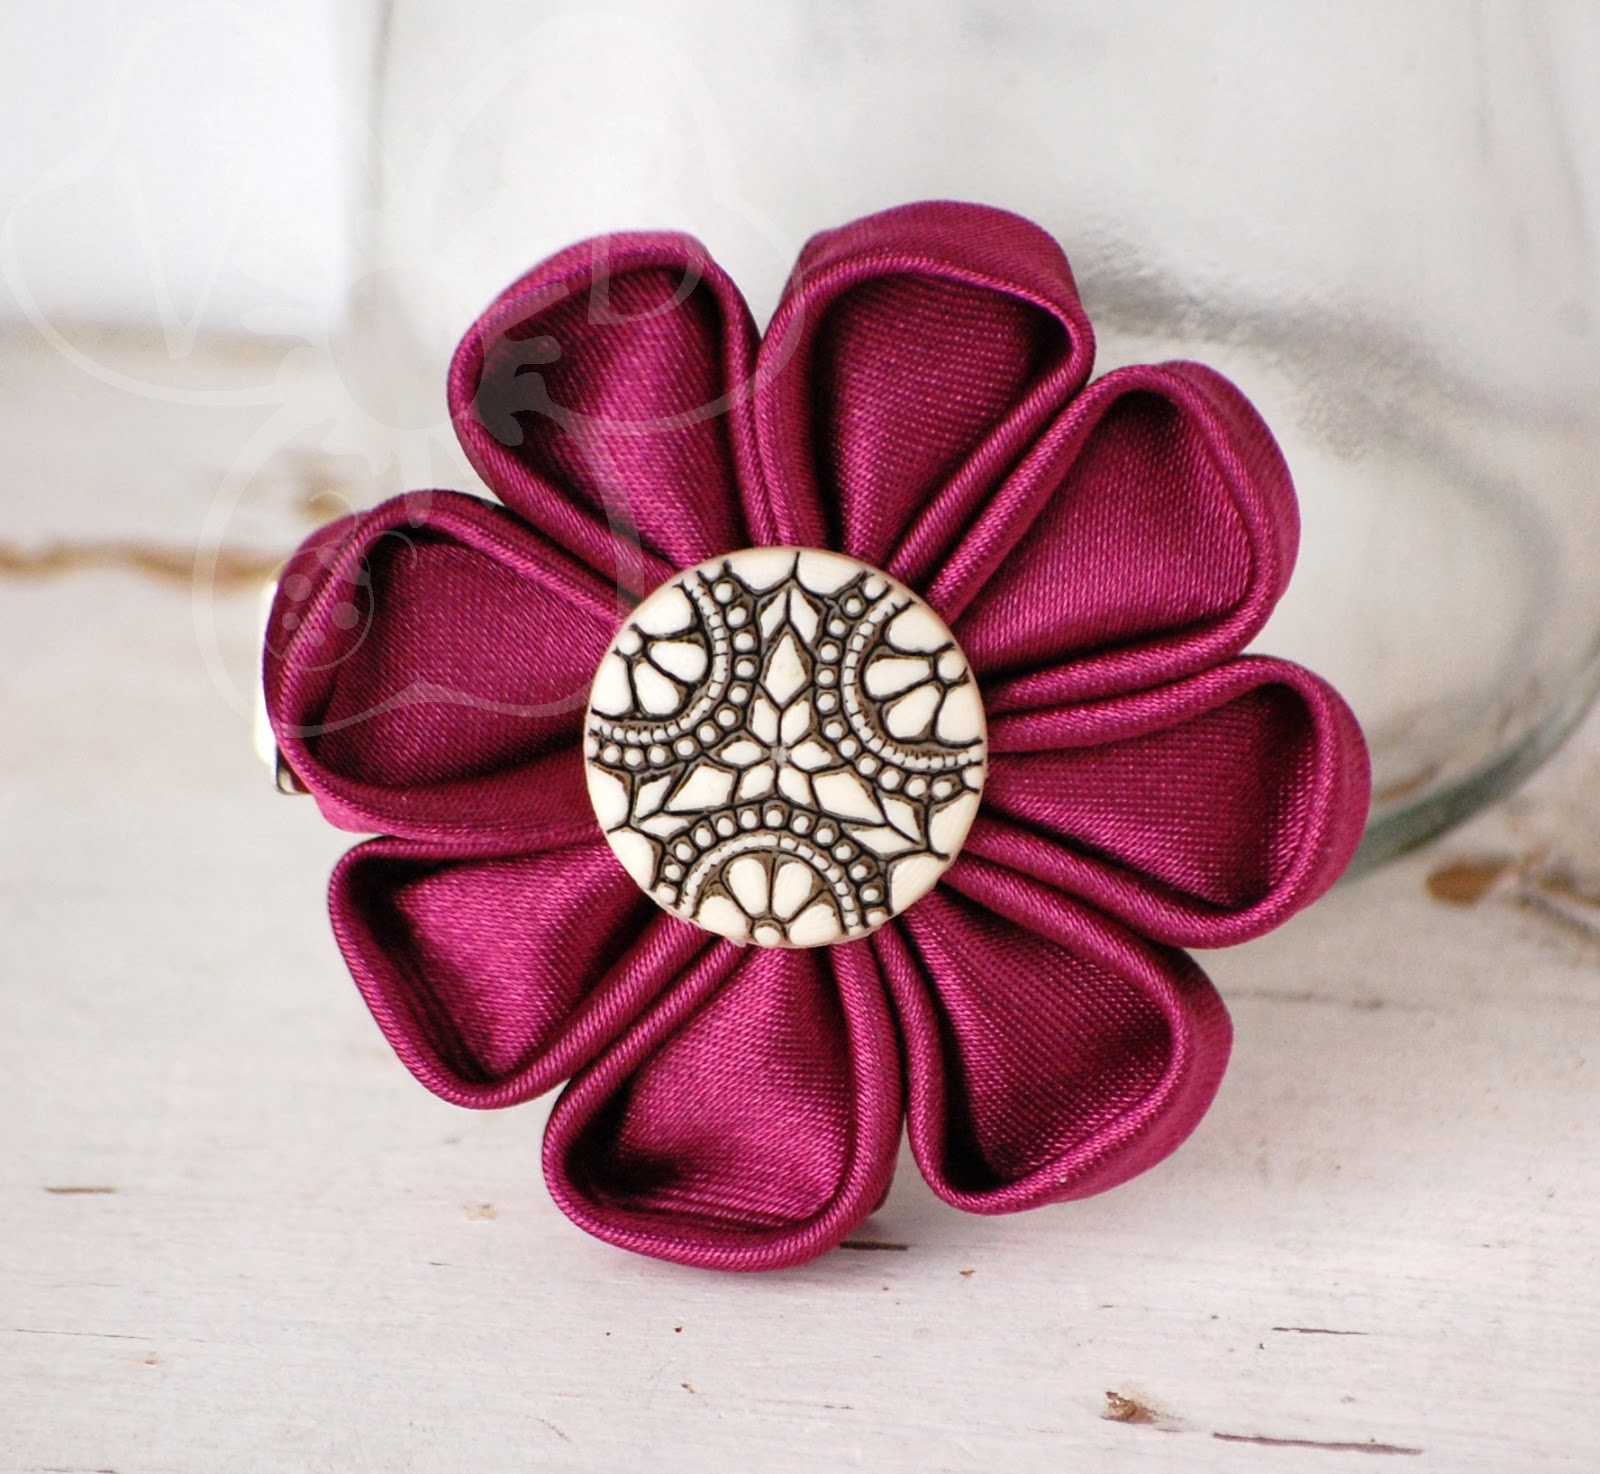 http://violetsbuds.storenvy.com/collections/220228-kanzashi-flowers/products/5552263-vintage-merlot-kanzashi-flower-hair-clip